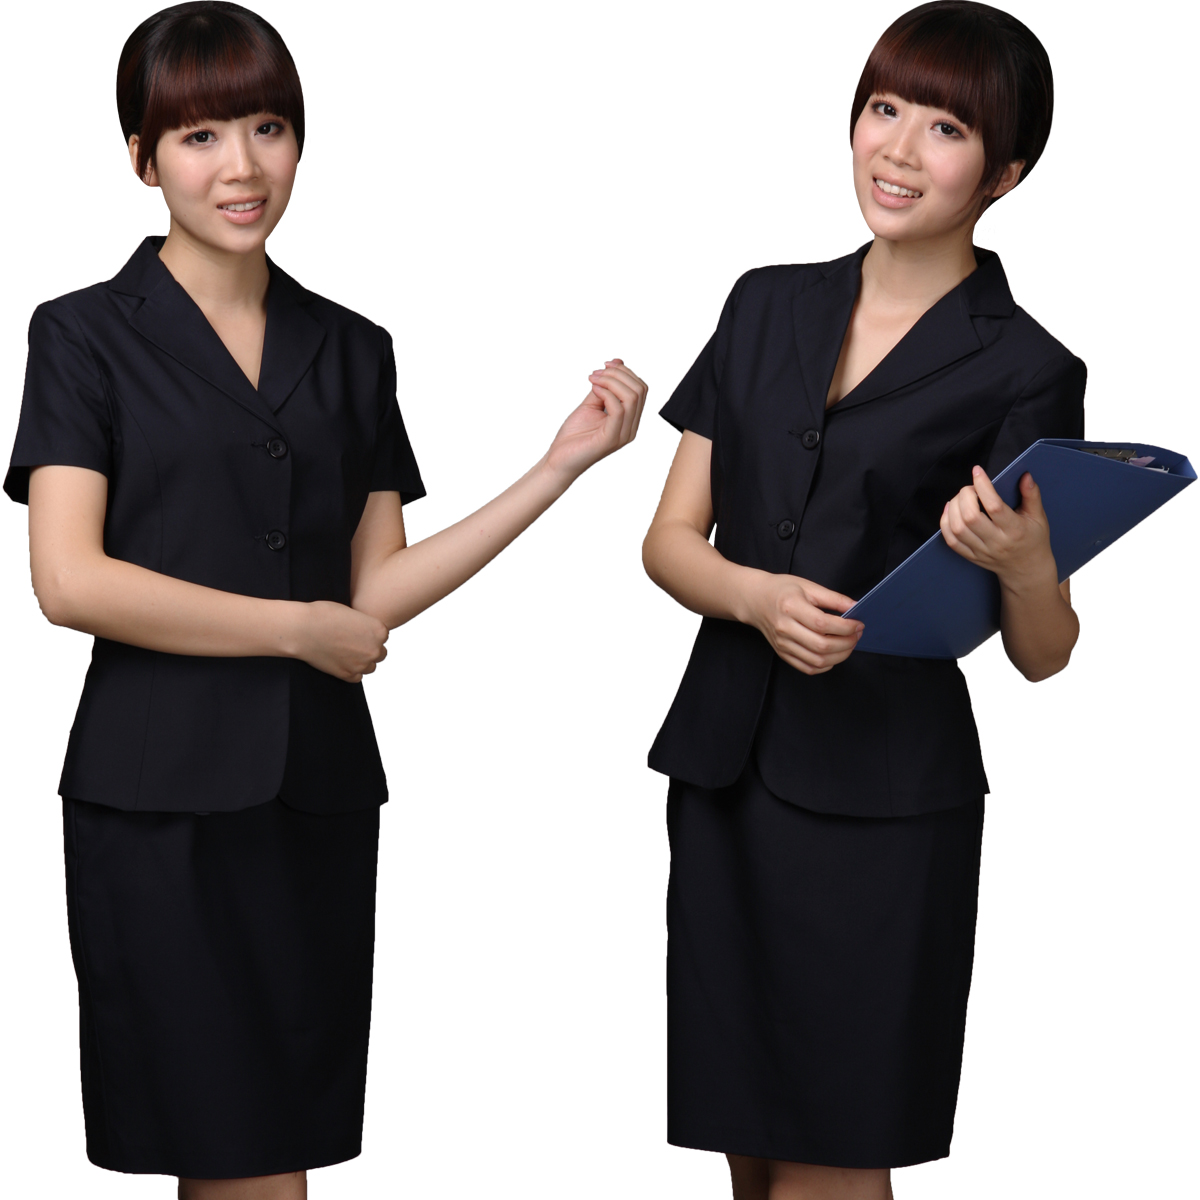 Work uniforms car interior design for Womens work shirts uniforms